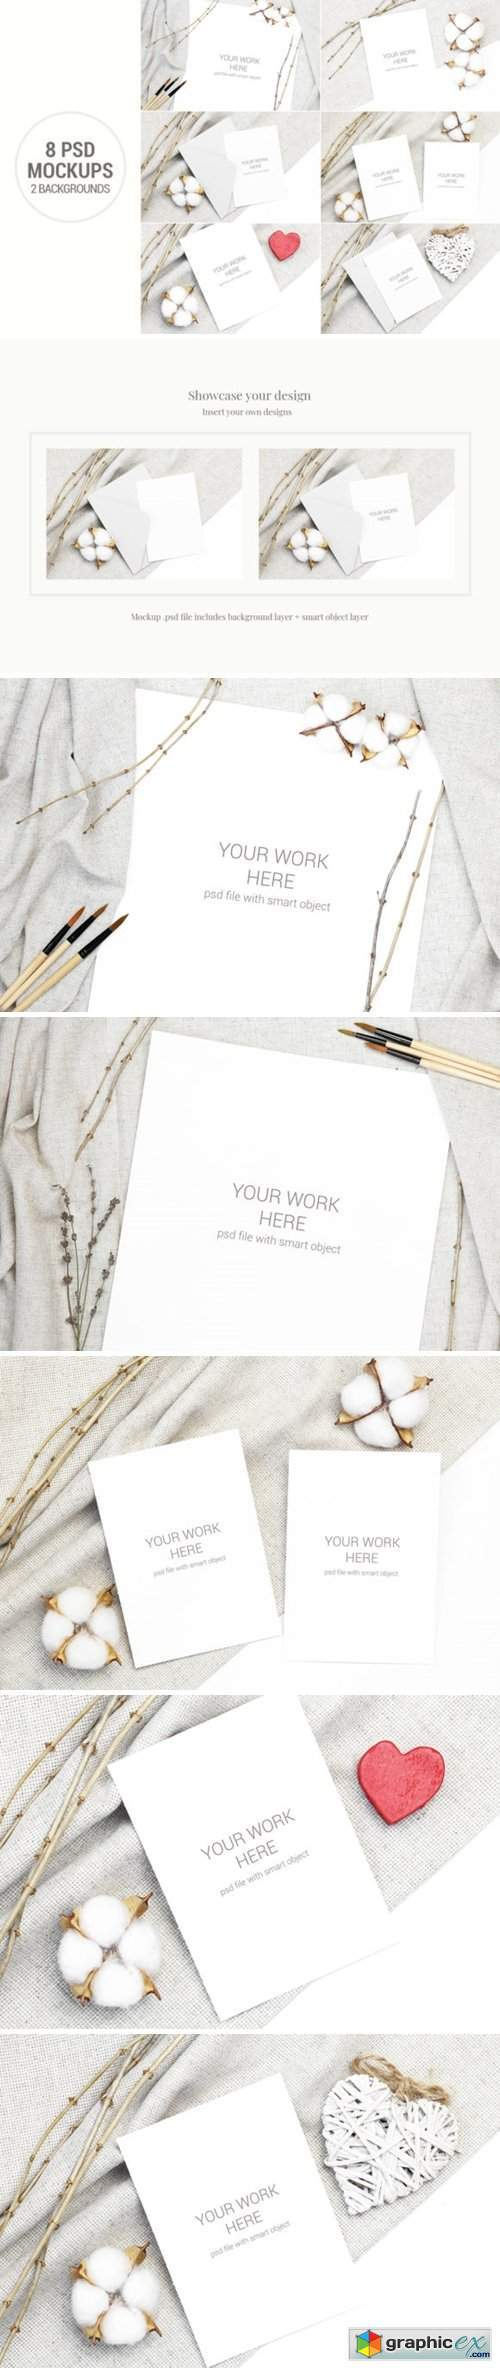 Card Mockup Set with Cotton and Branches